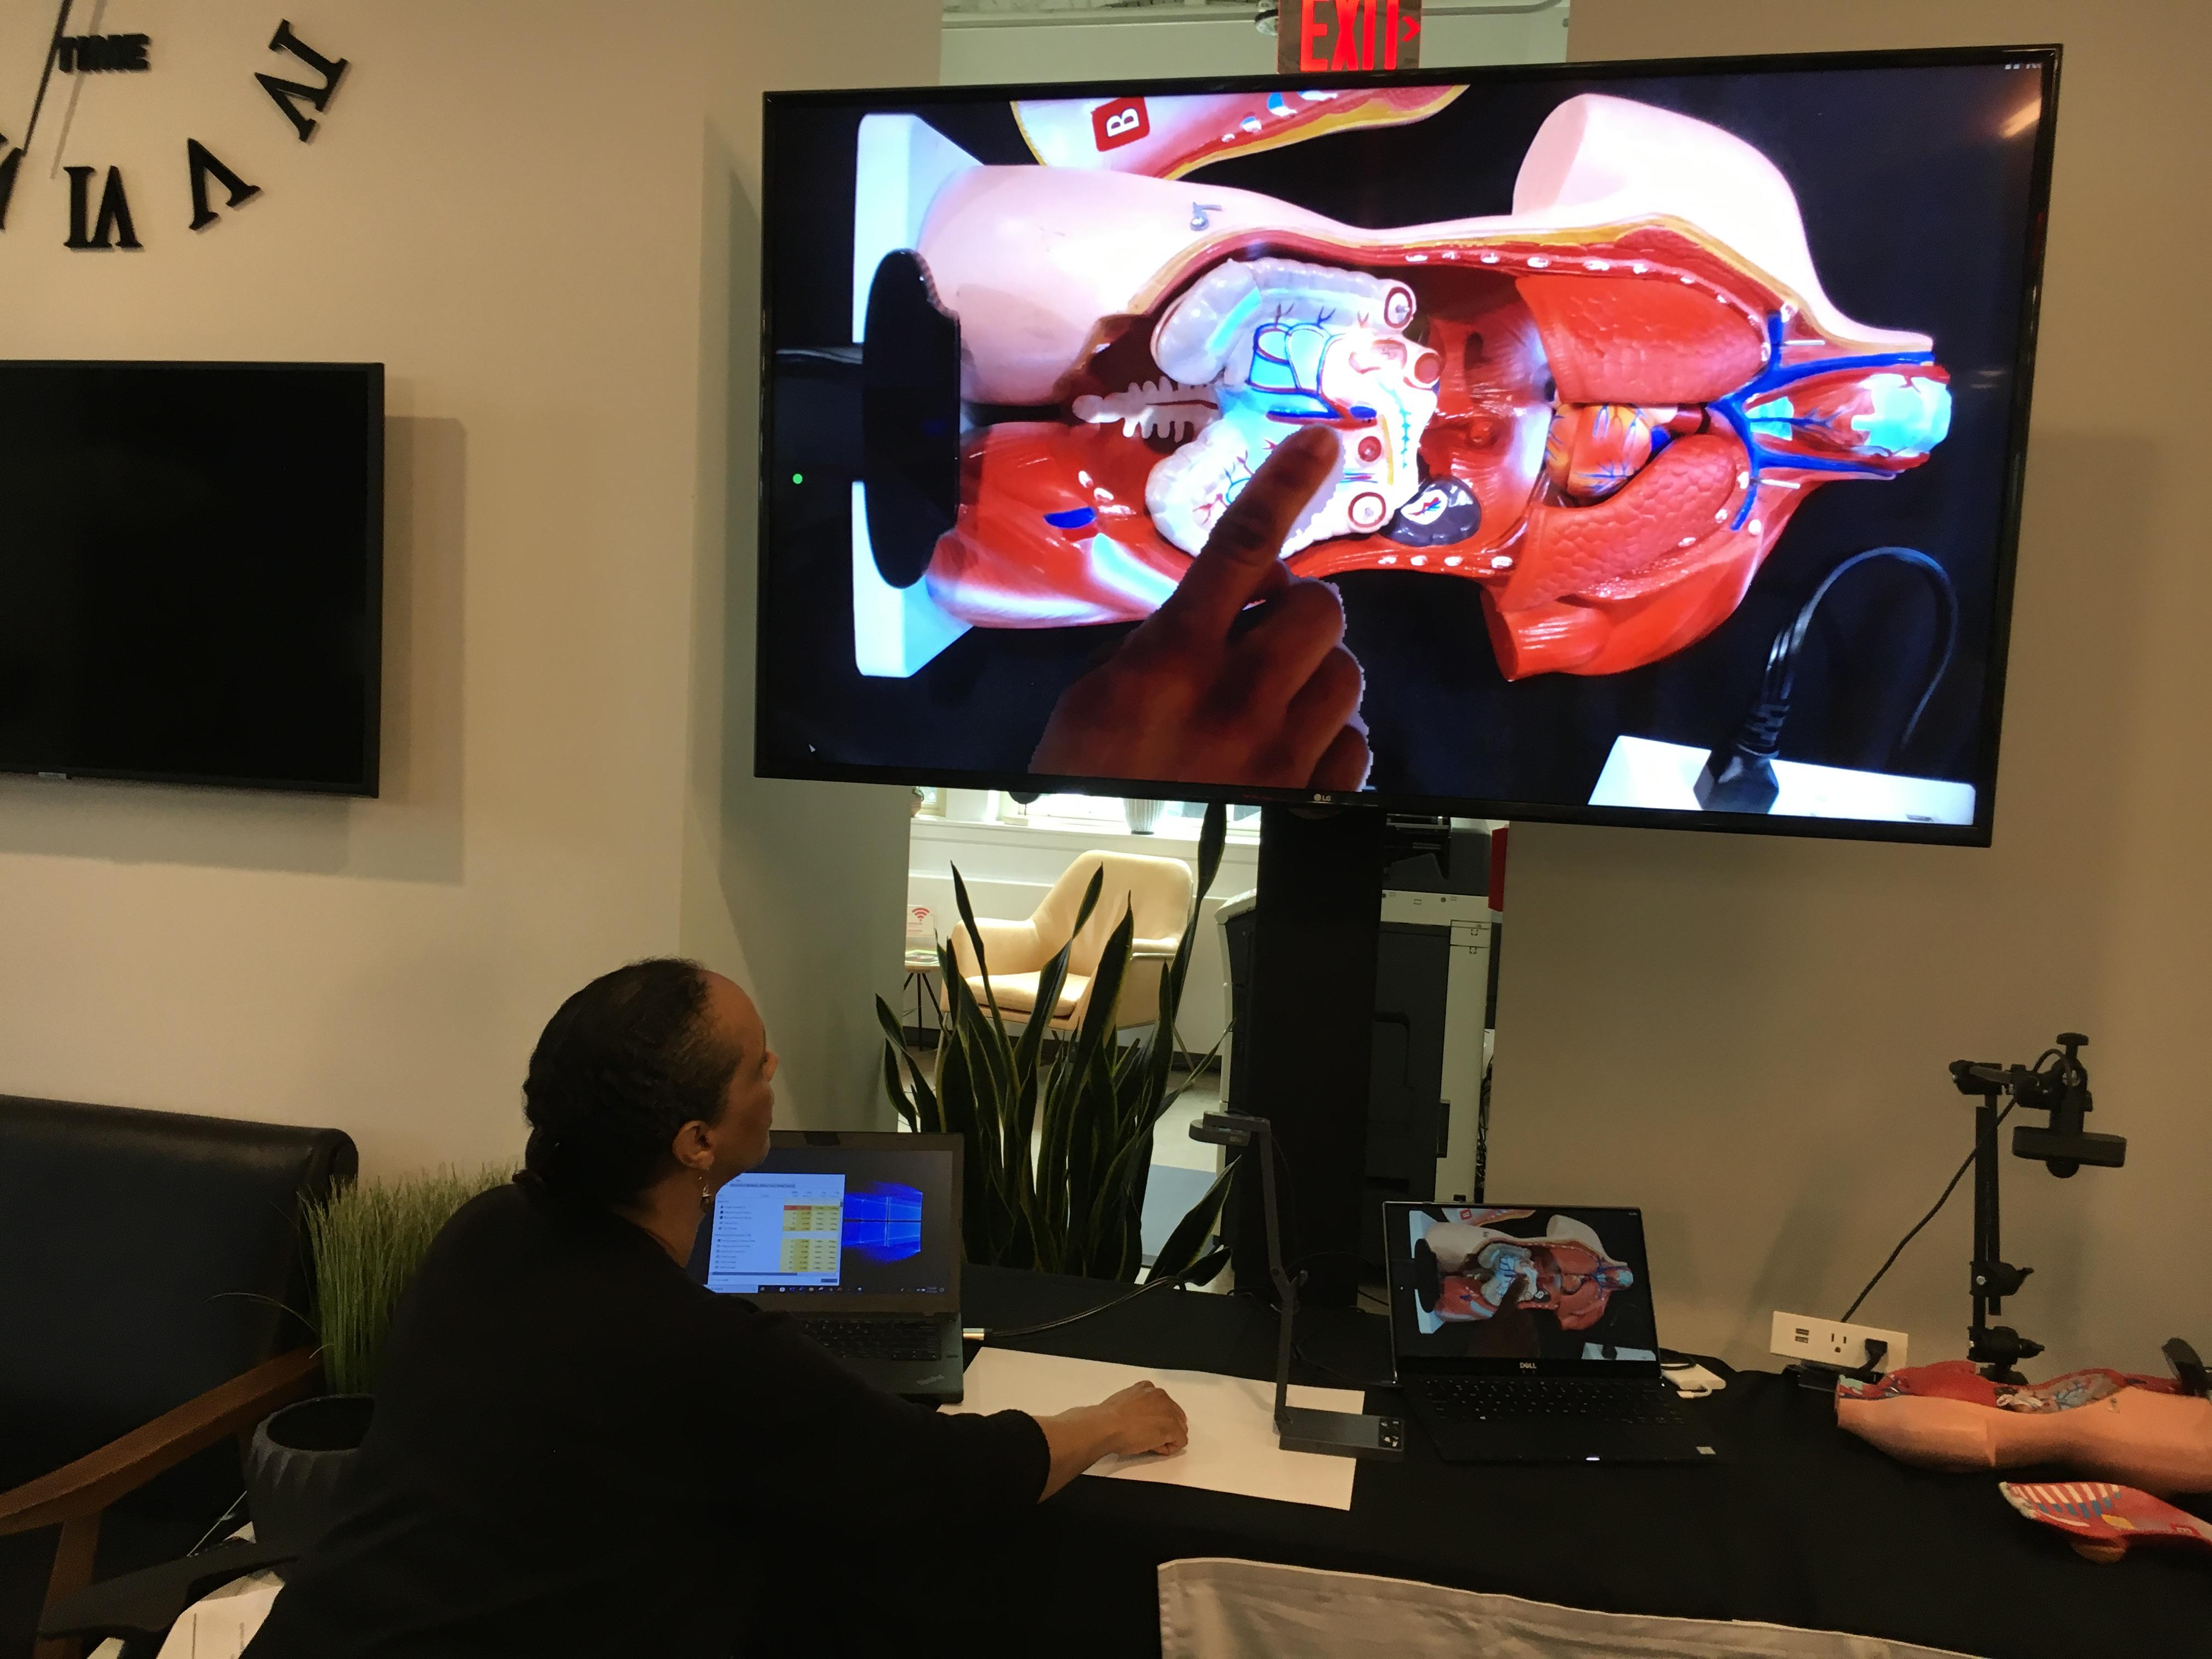 A product manager at Proximie shows how 5G helps bring AR capabilities to telemedicine.